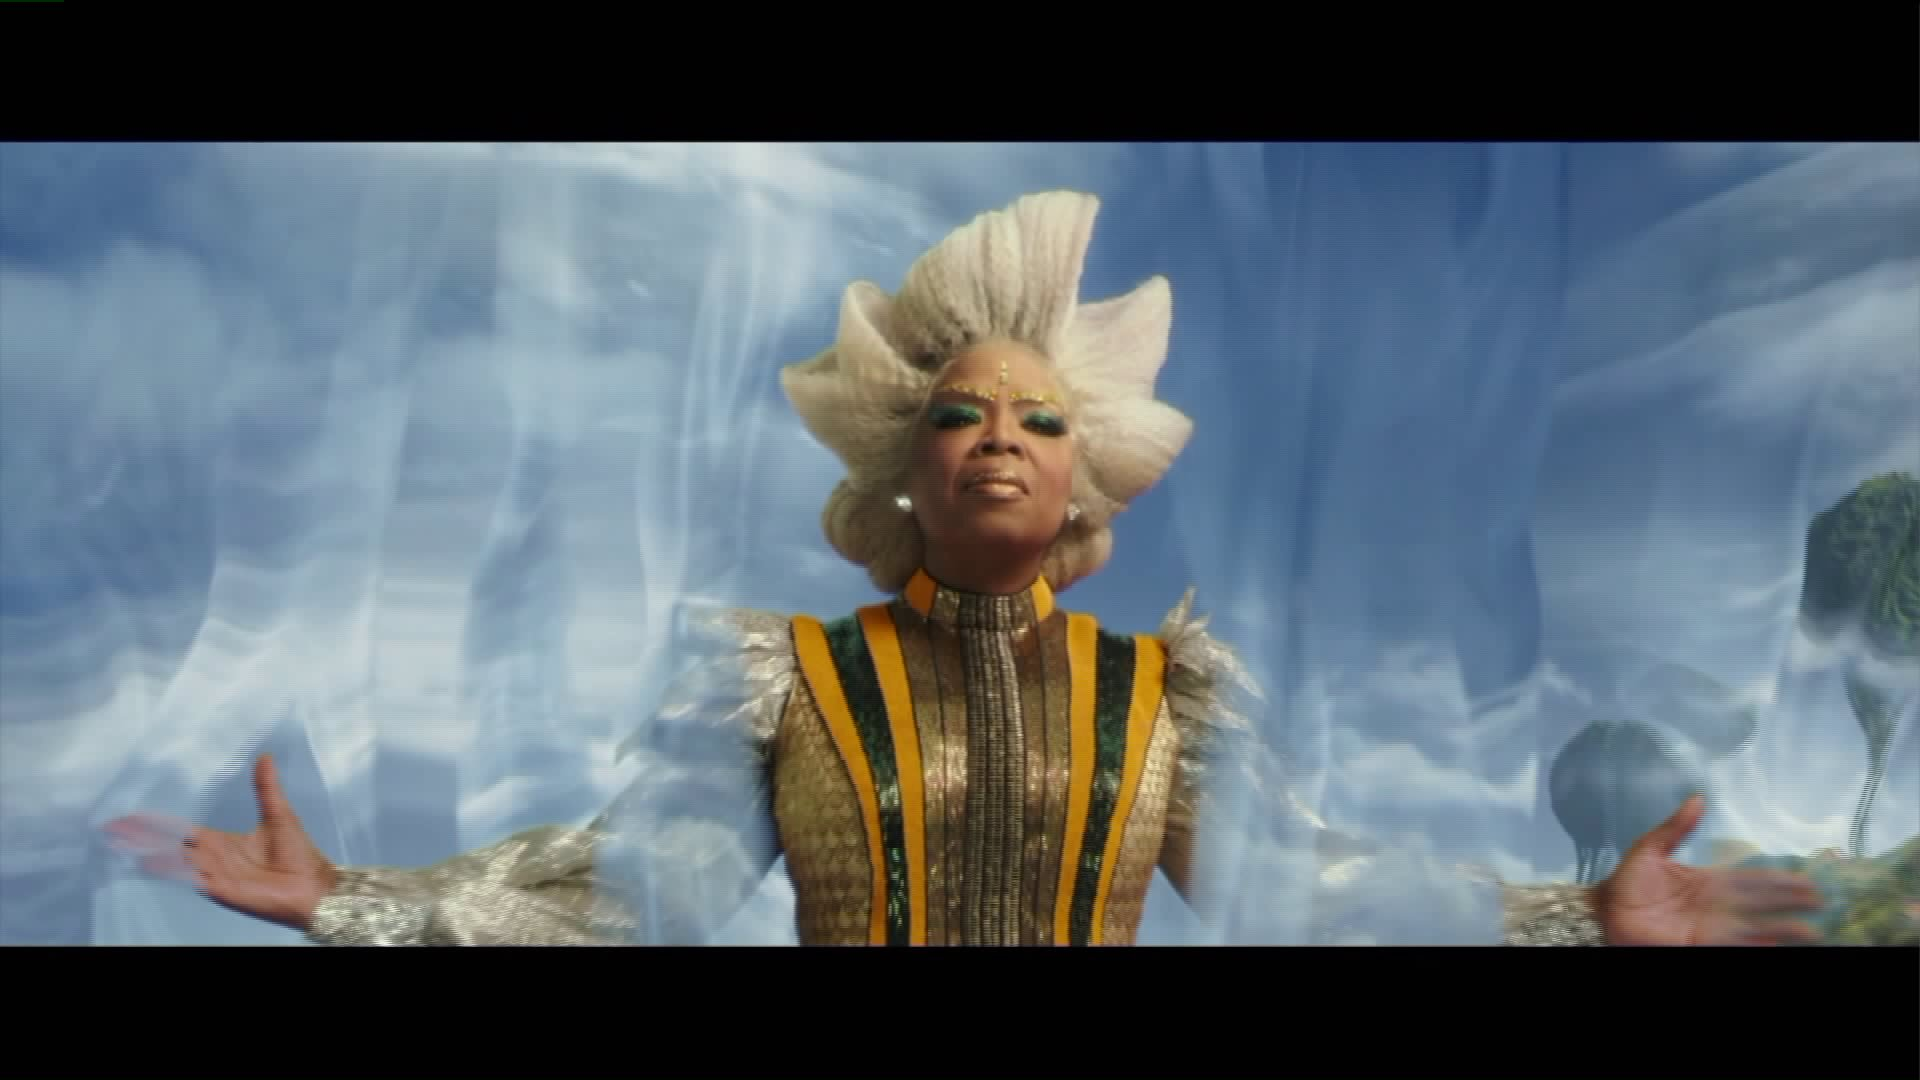 Dean S Reviews A Wrinkle In Time Gringo The Strangers